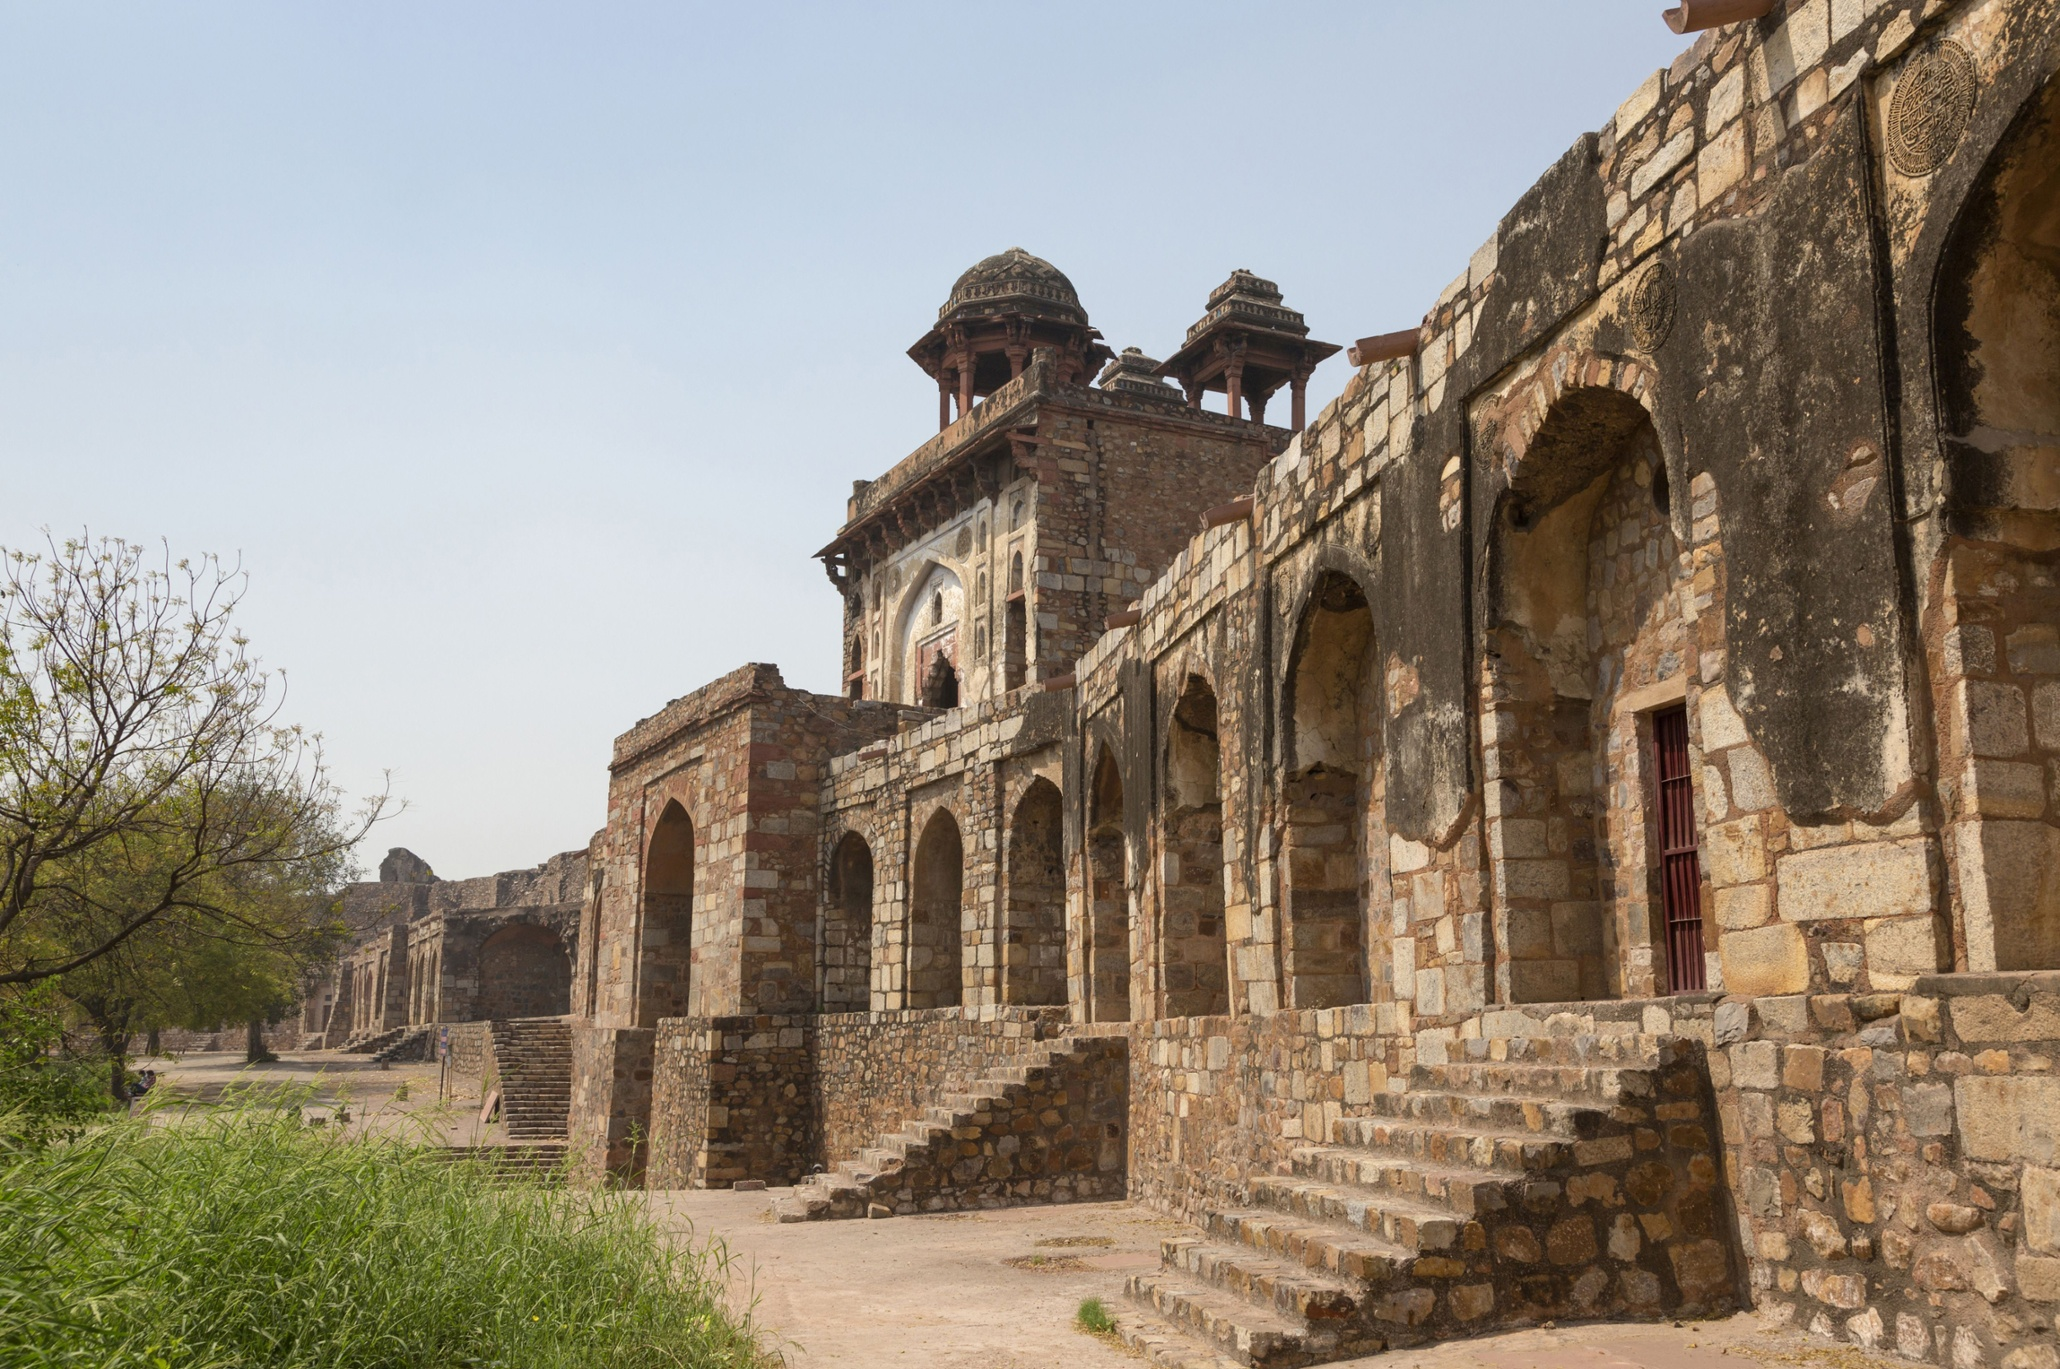 Delhi's 16th-century Purana Qila fort: a history of cities in 50 buildings, day 4